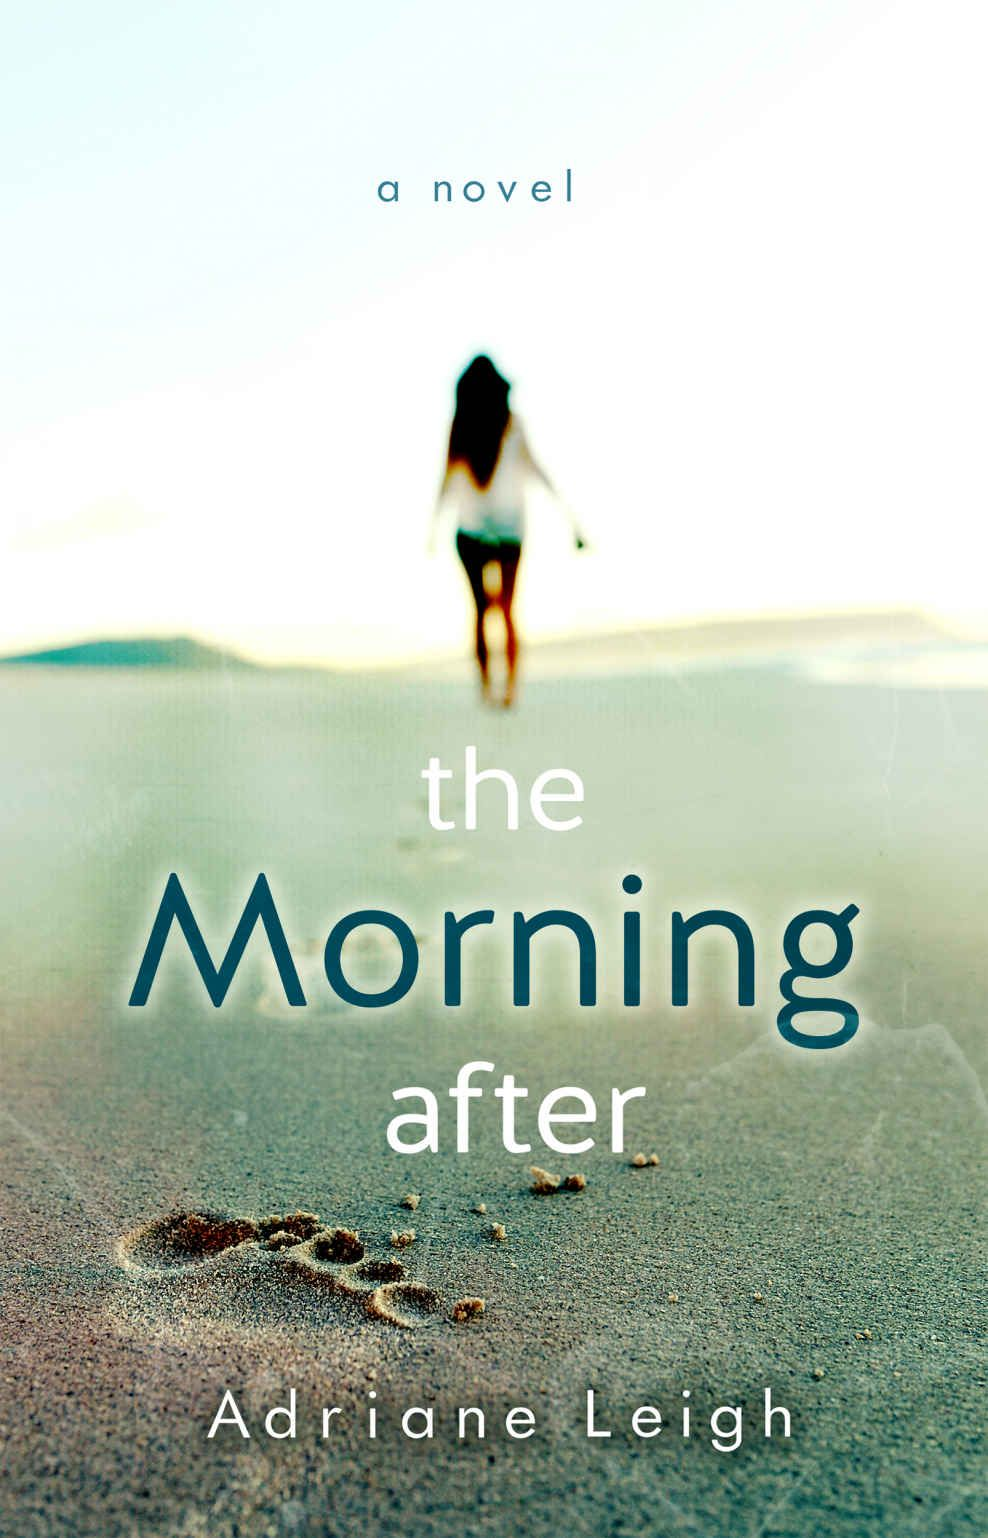 The Morning After - Kindle edition by Adriane Leigh. Literature & Fiction Kindle eBooks @ Amazon.com.